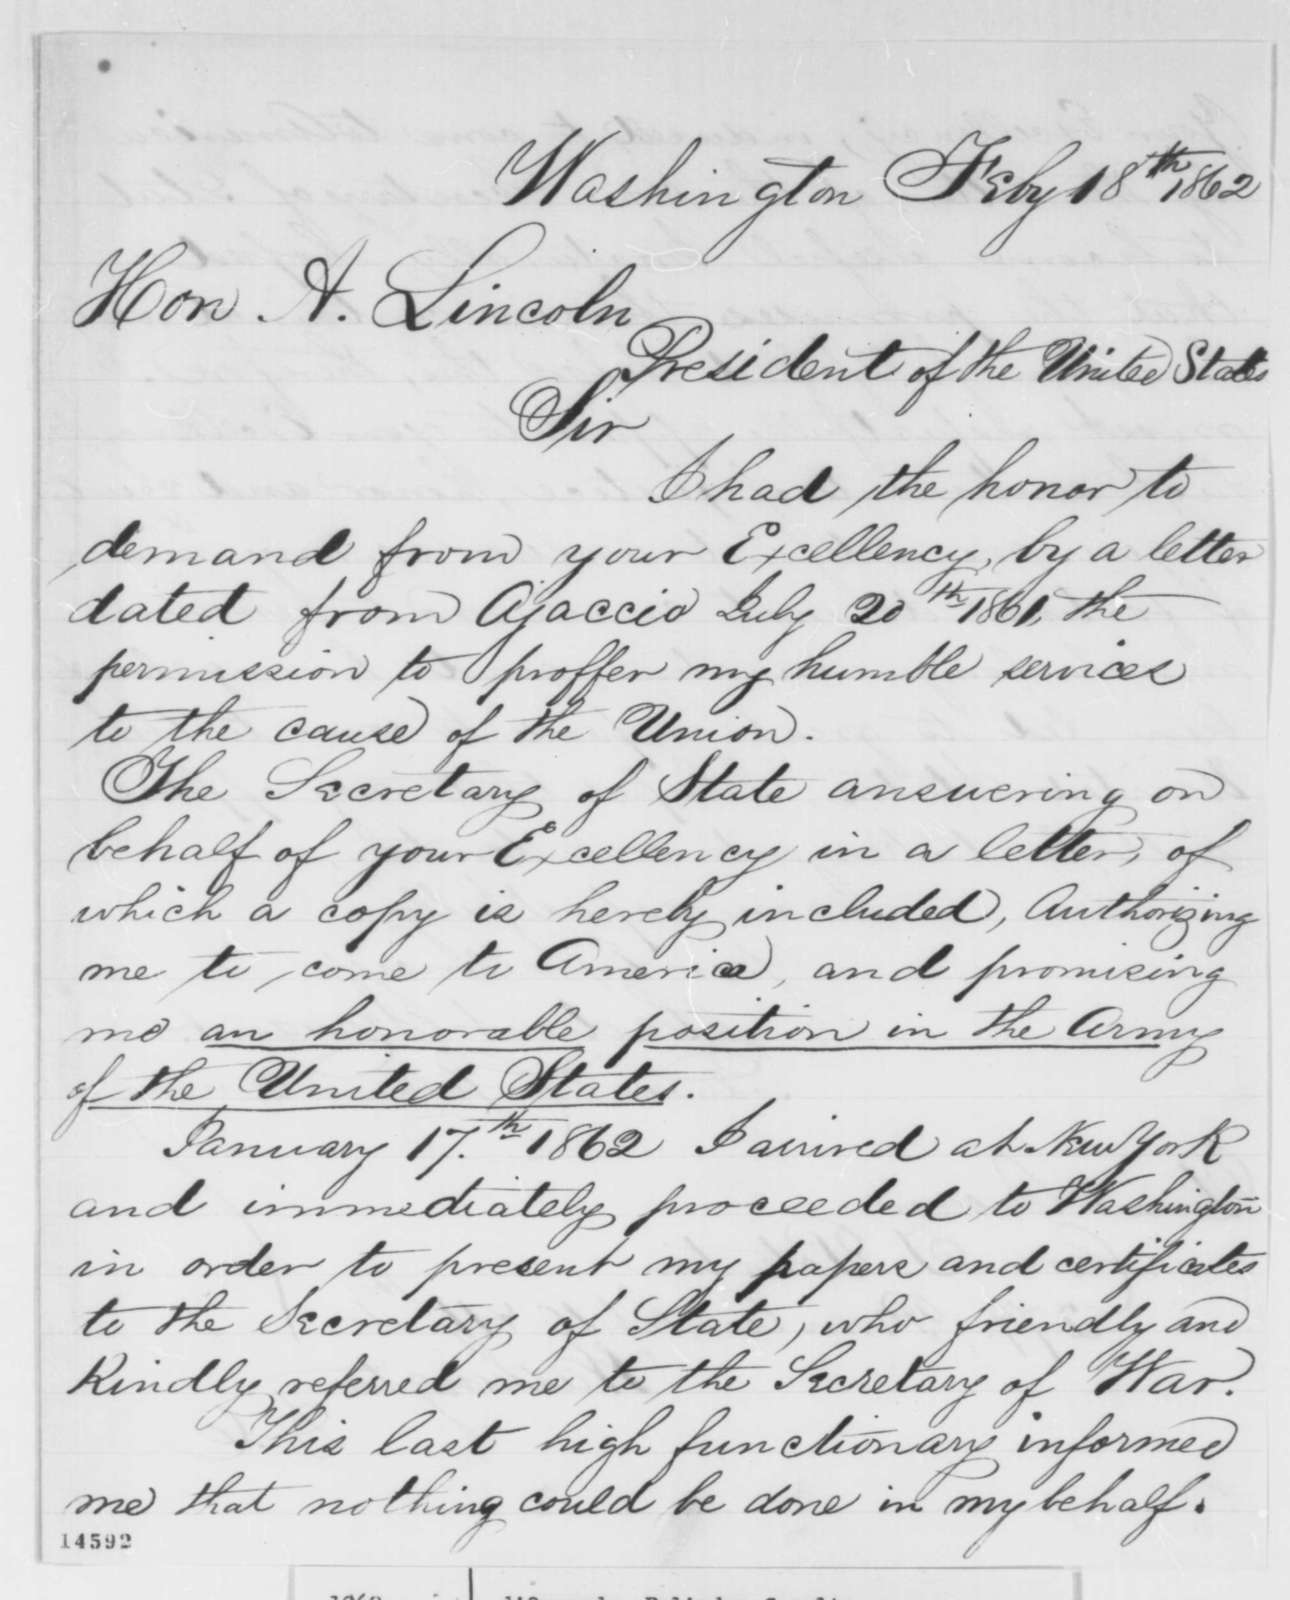 Polindor C. D'Ornano to Abraham Lincoln, Tuesday, February 18, 1862  (Offers his services to the government)